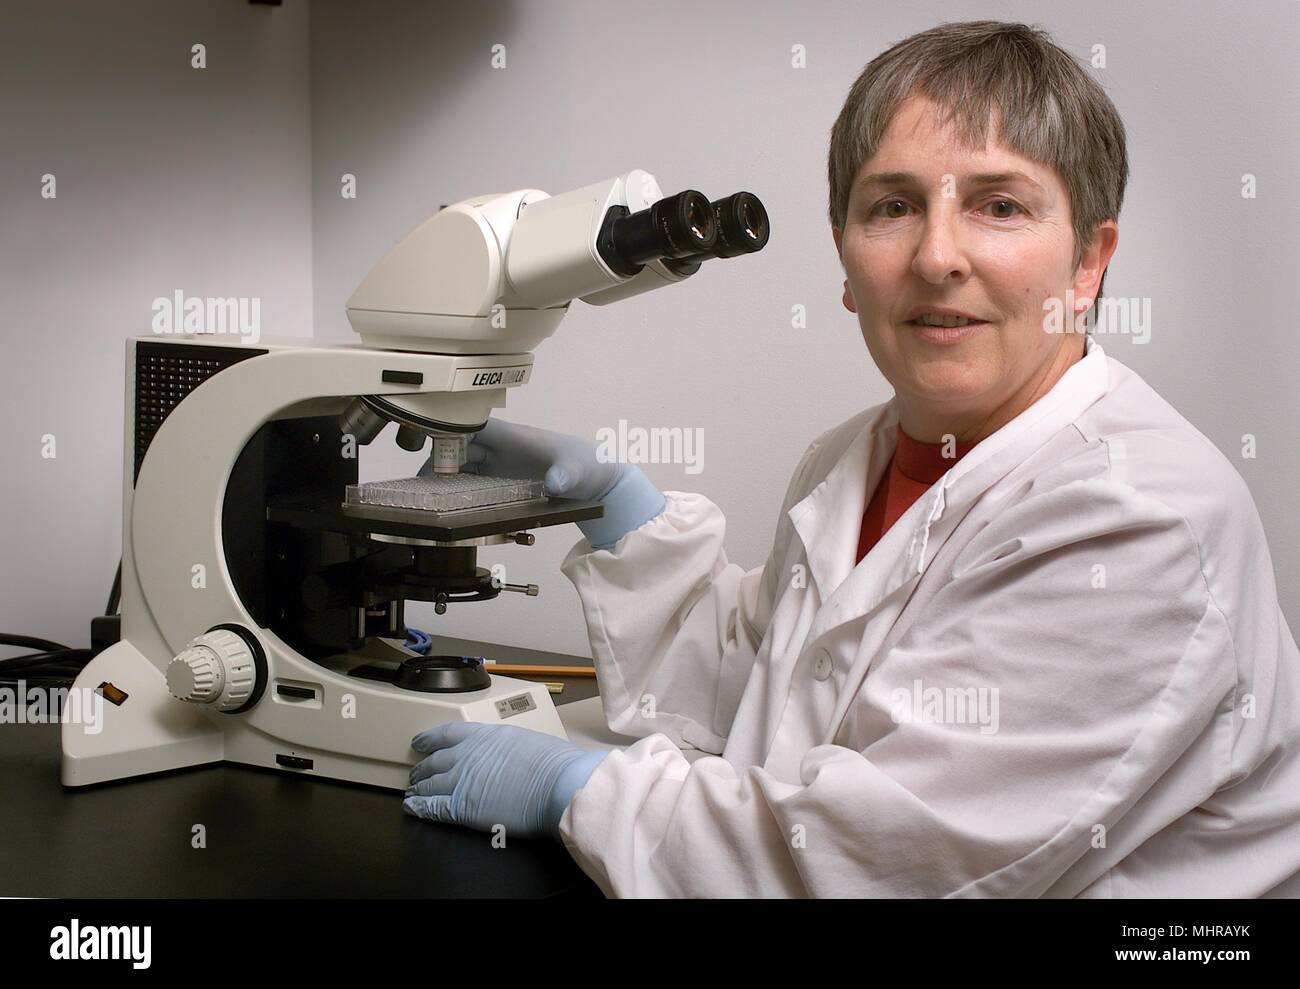 Centers for Disease Control Meningitis and Special Pathogens Branch (MSPB) laboratorian, Sandra Bragg, sitting in front of a microscope, 2005. Image courtesy Centers for Disease Control (CDC) / Maryam I. Daneshvar. () - Stock Image